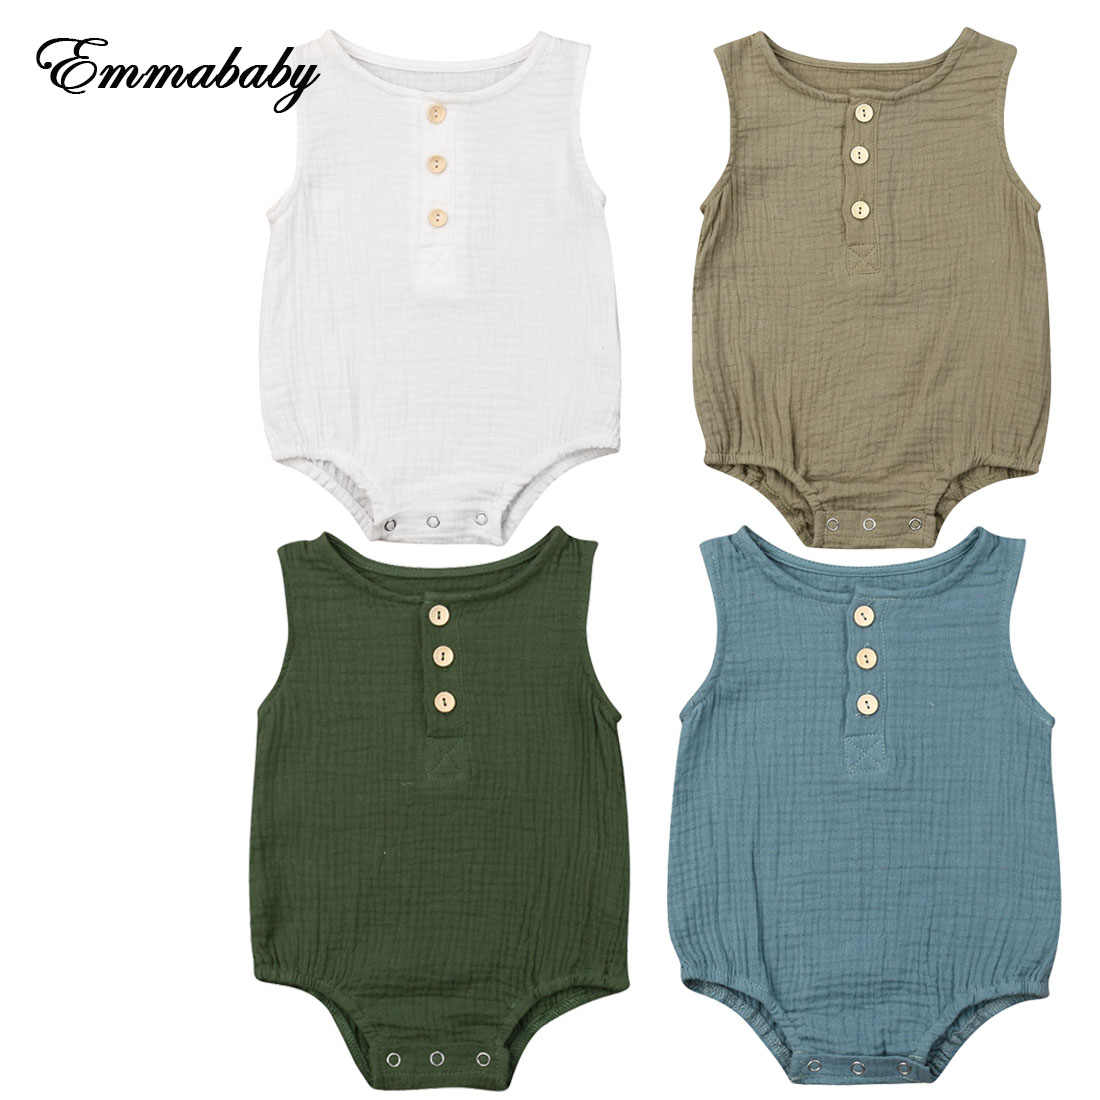 NEW 2020 Toddler Baby Girls Kid Sleeveless Cotton Soft Romper Jumpsuit Outfit Summer Clothes 0-24M